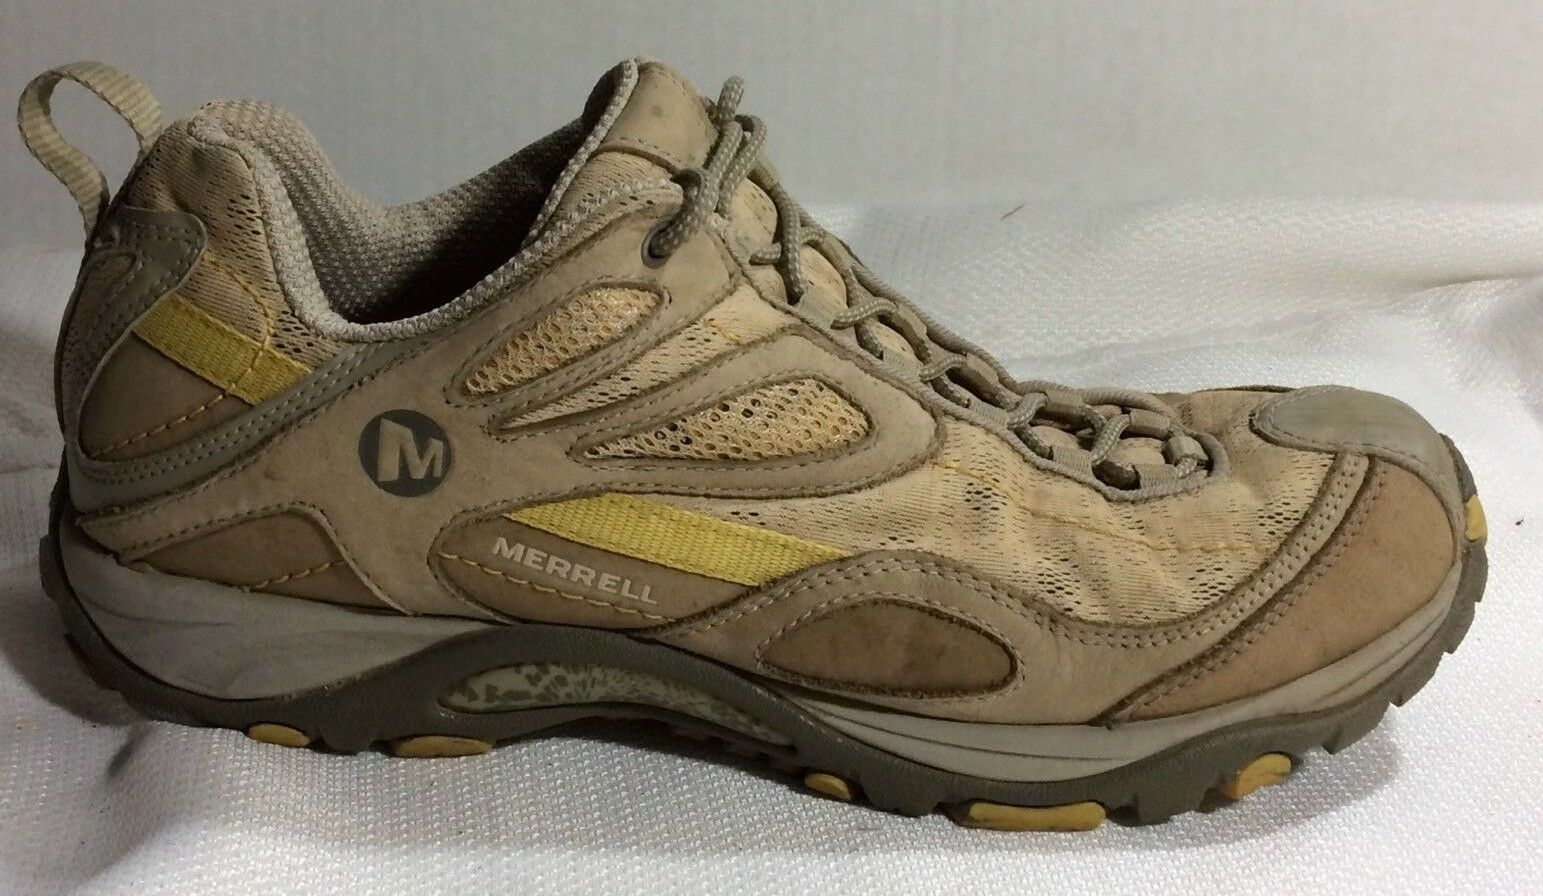 Merrell Siren Sync Womens 9 Med Taupe Leather Hiking Trail Sneakers shoes Vibram